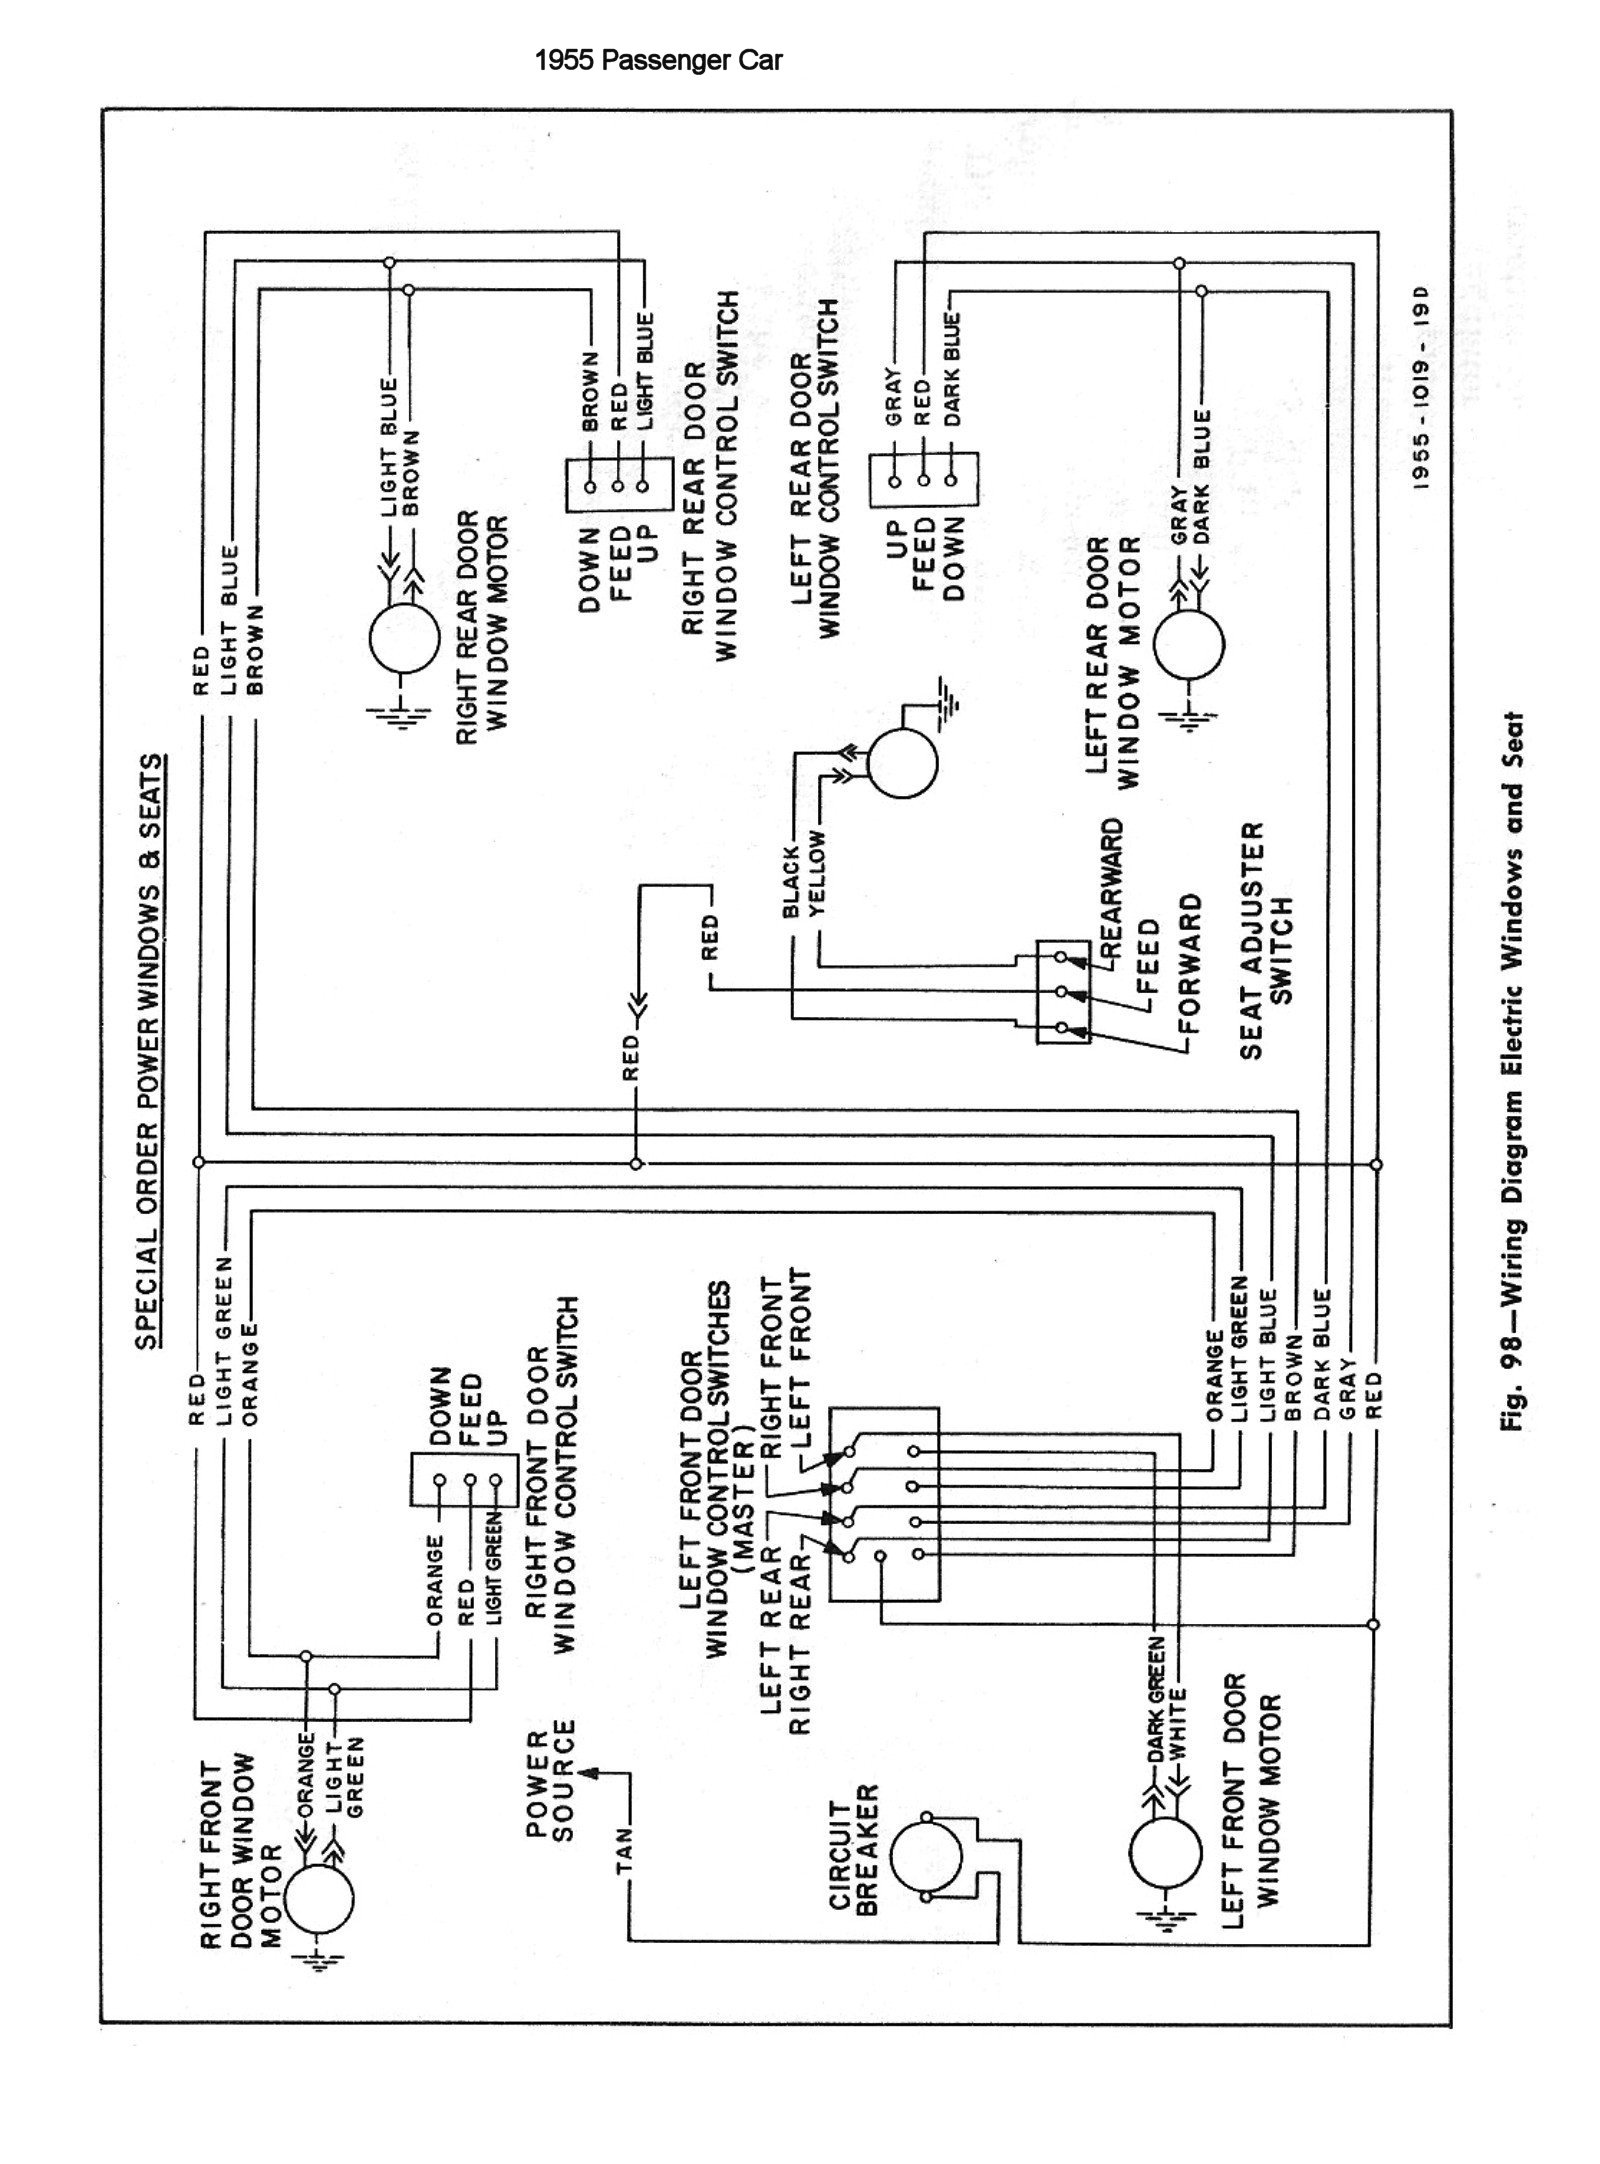 55csm0146 wiring diagram for international truck the wiring diagram 1955 chevy ignition switch wiring diagram at alyssarenee.co